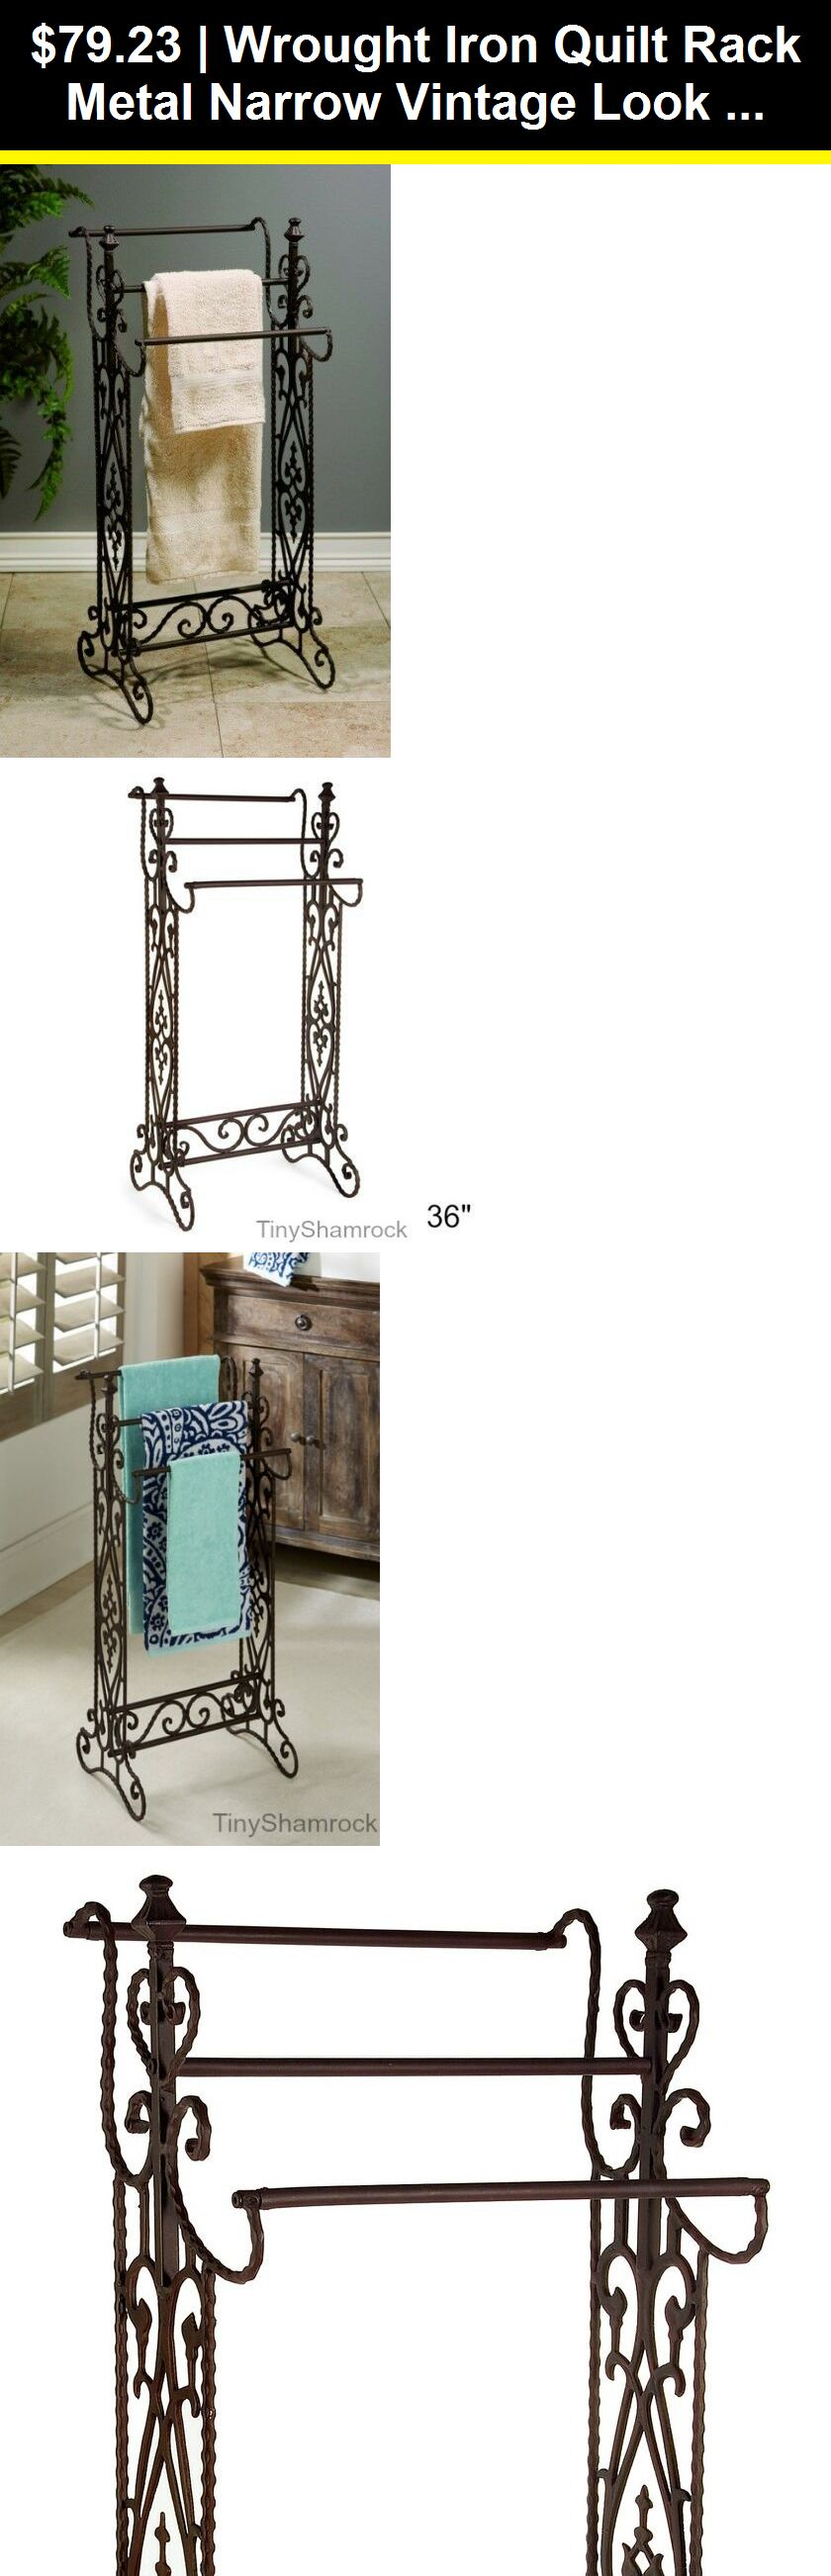 Quilt Hangers And Stands 83959 Wrought Iron Quilt Rack Metal